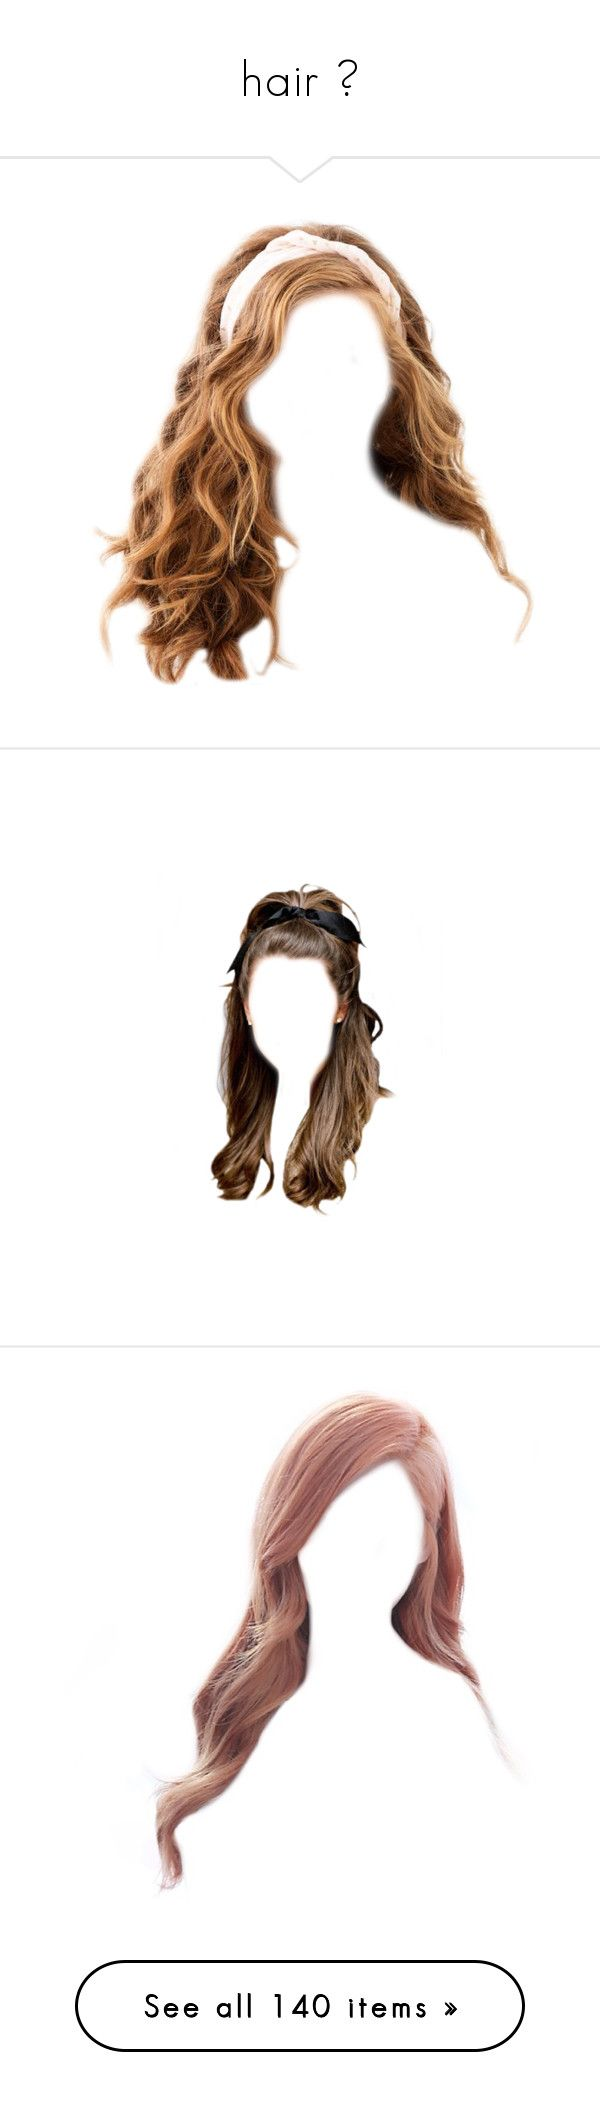 """""""hair ♡"""" by foreverdreamt ❤ liked on Polyvore featuring accessories, hair accessories, head wrap hair accessories, head wrap headbands, headband hair accessories, hair band headband, hair band accessories, hair, beauty products and haircare"""